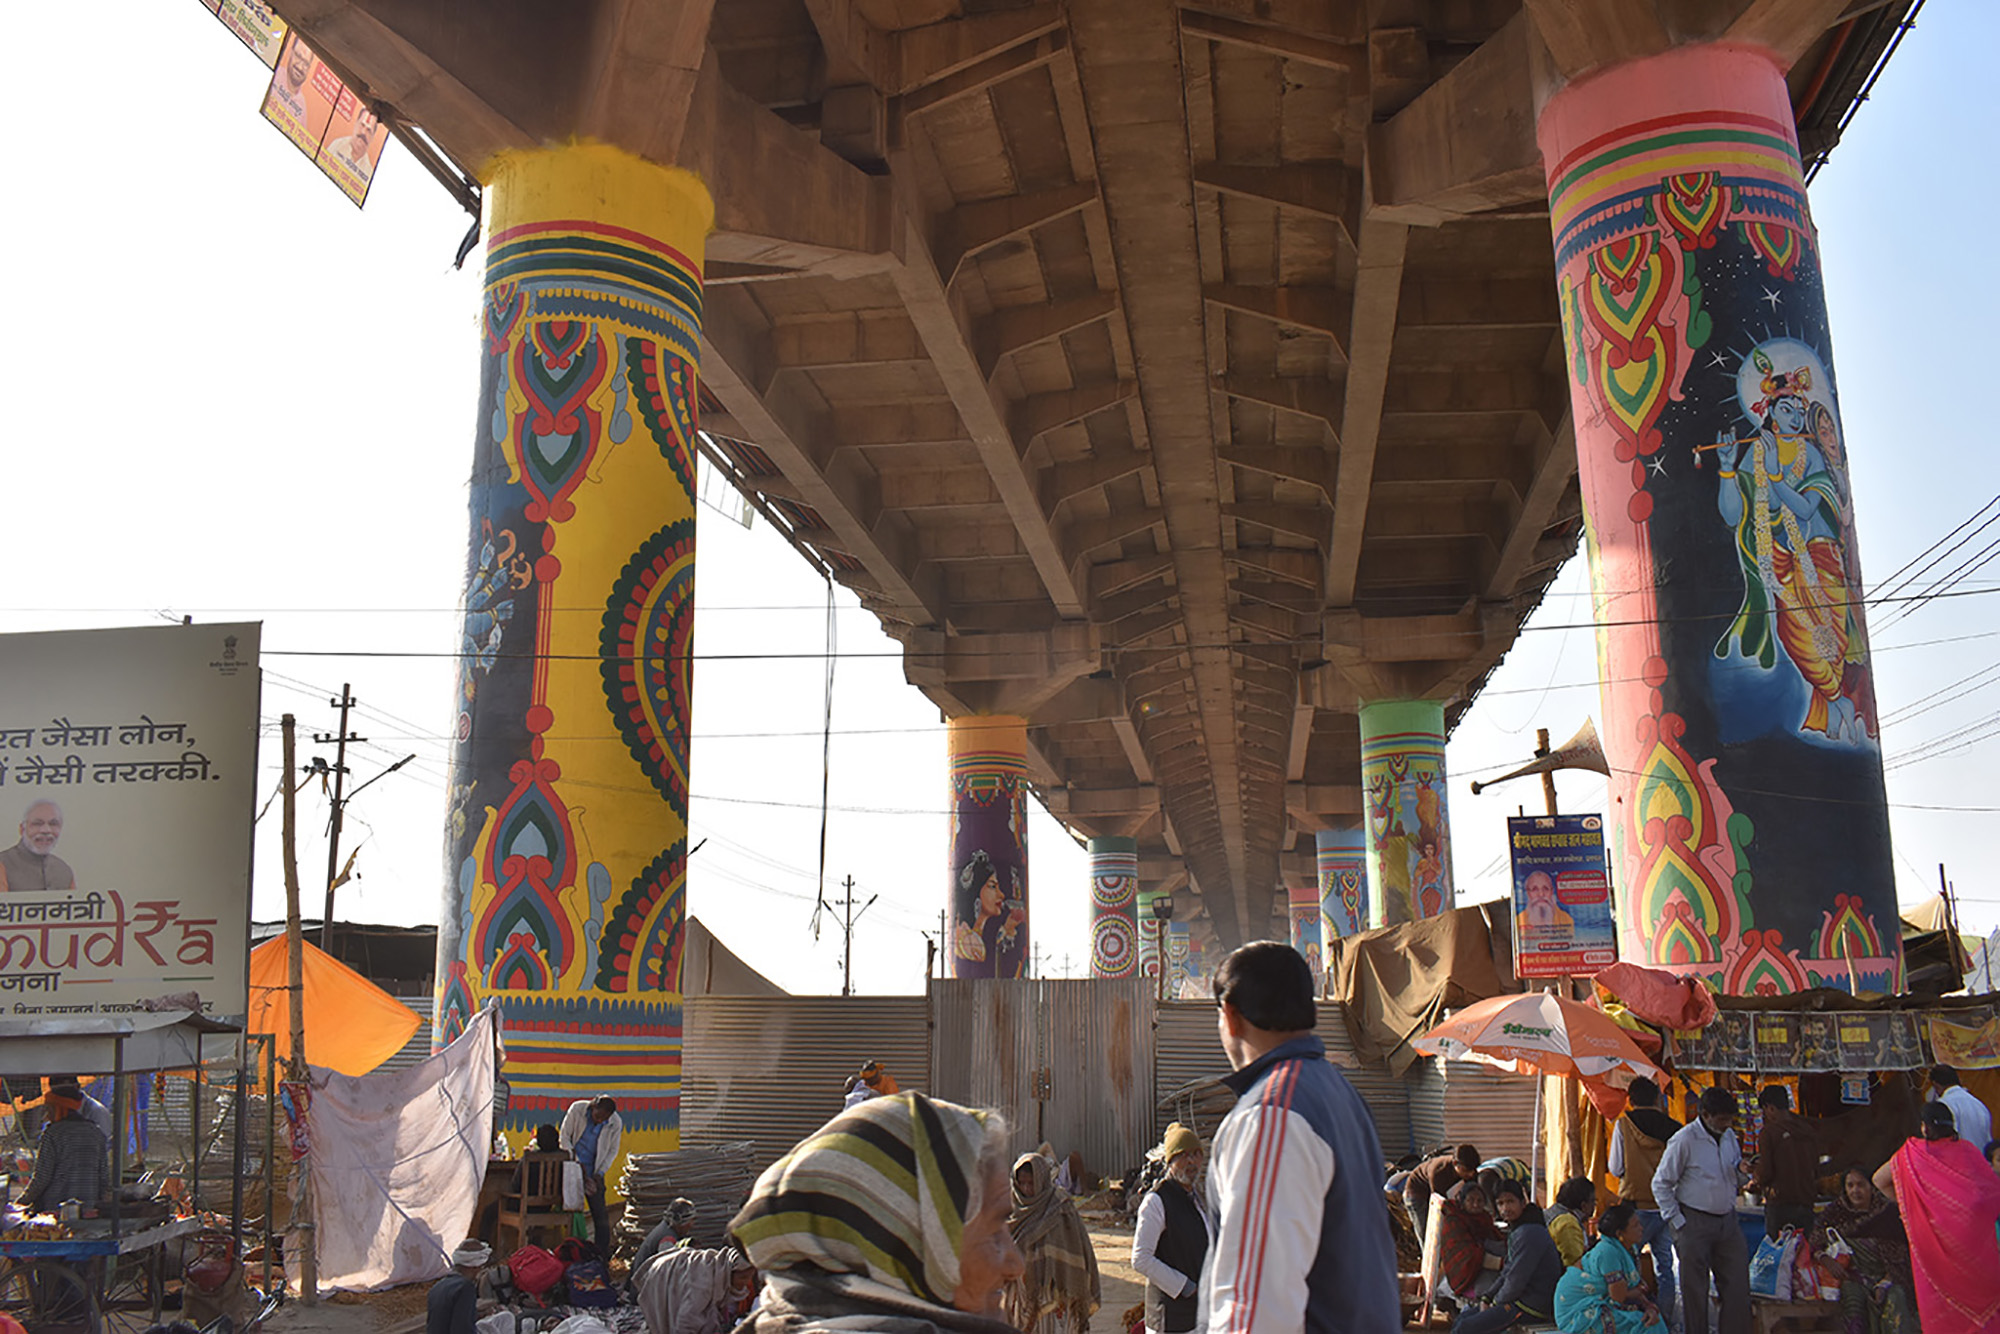 This was shot at the Kumbh Mela 2019.